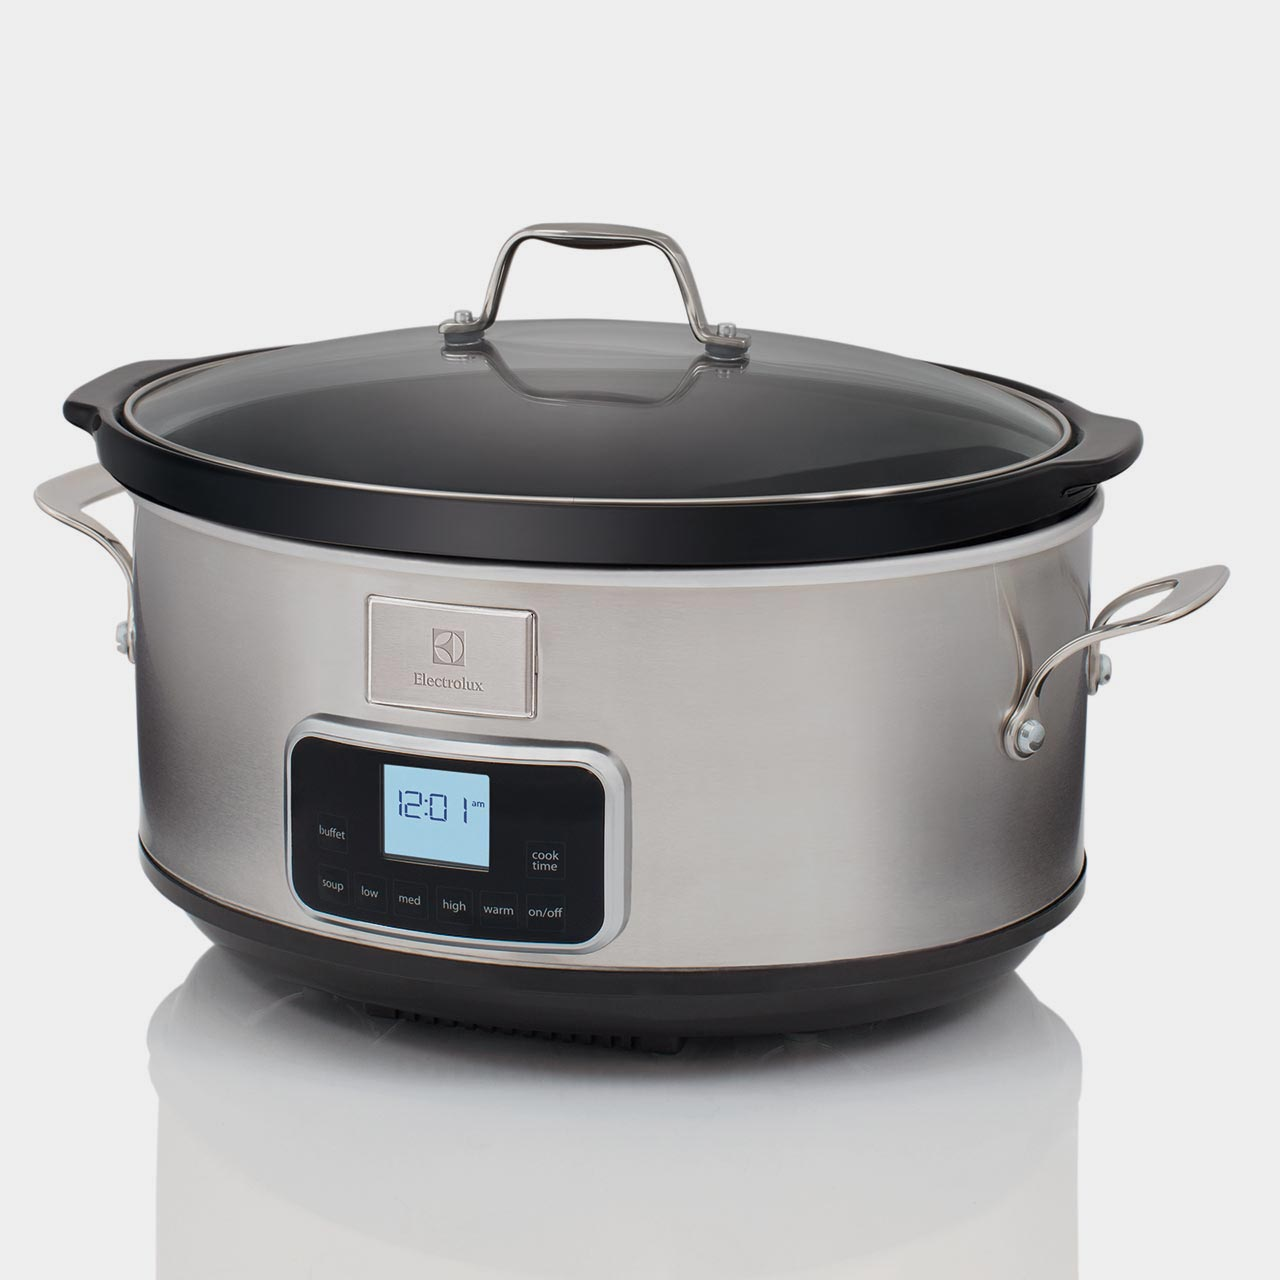 Slow Cooker is in tempered glass and has a ceramic casserole